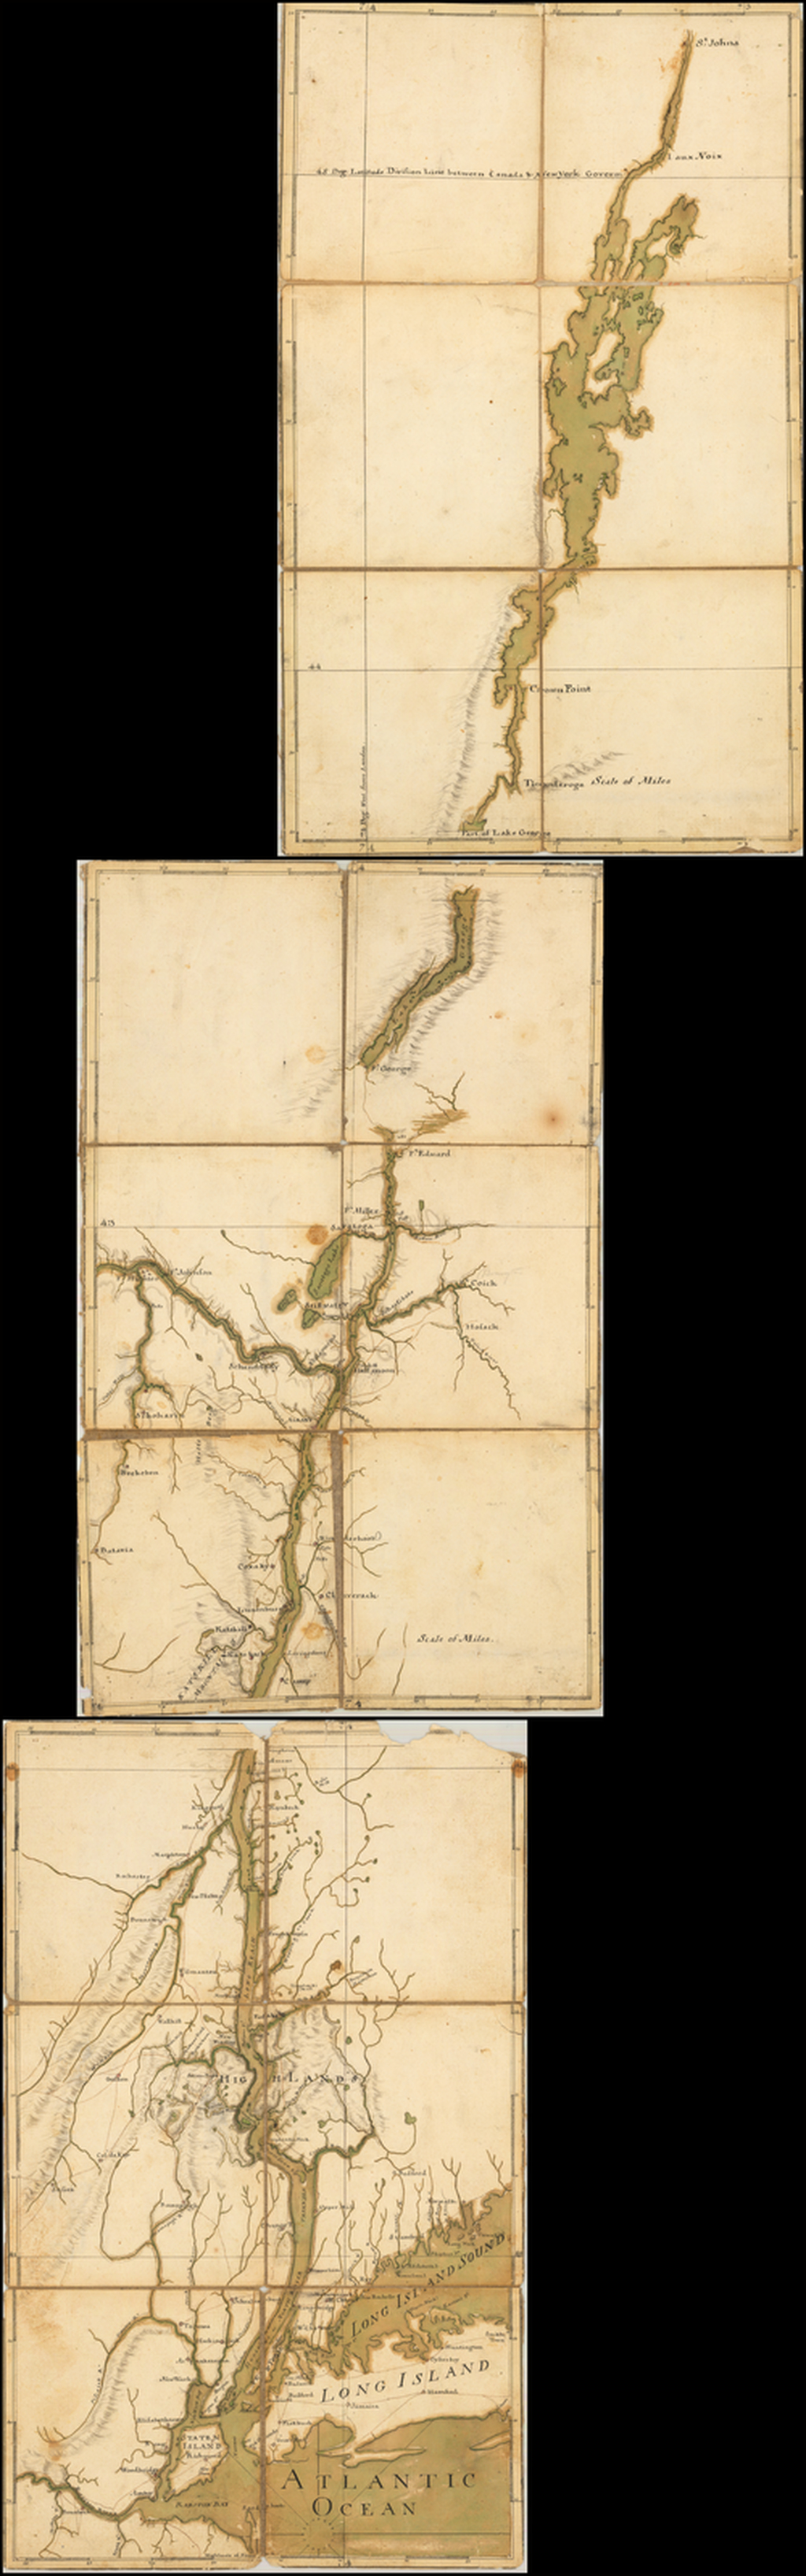 [Map From New York to St. John's] By Franz Joseph Pfister